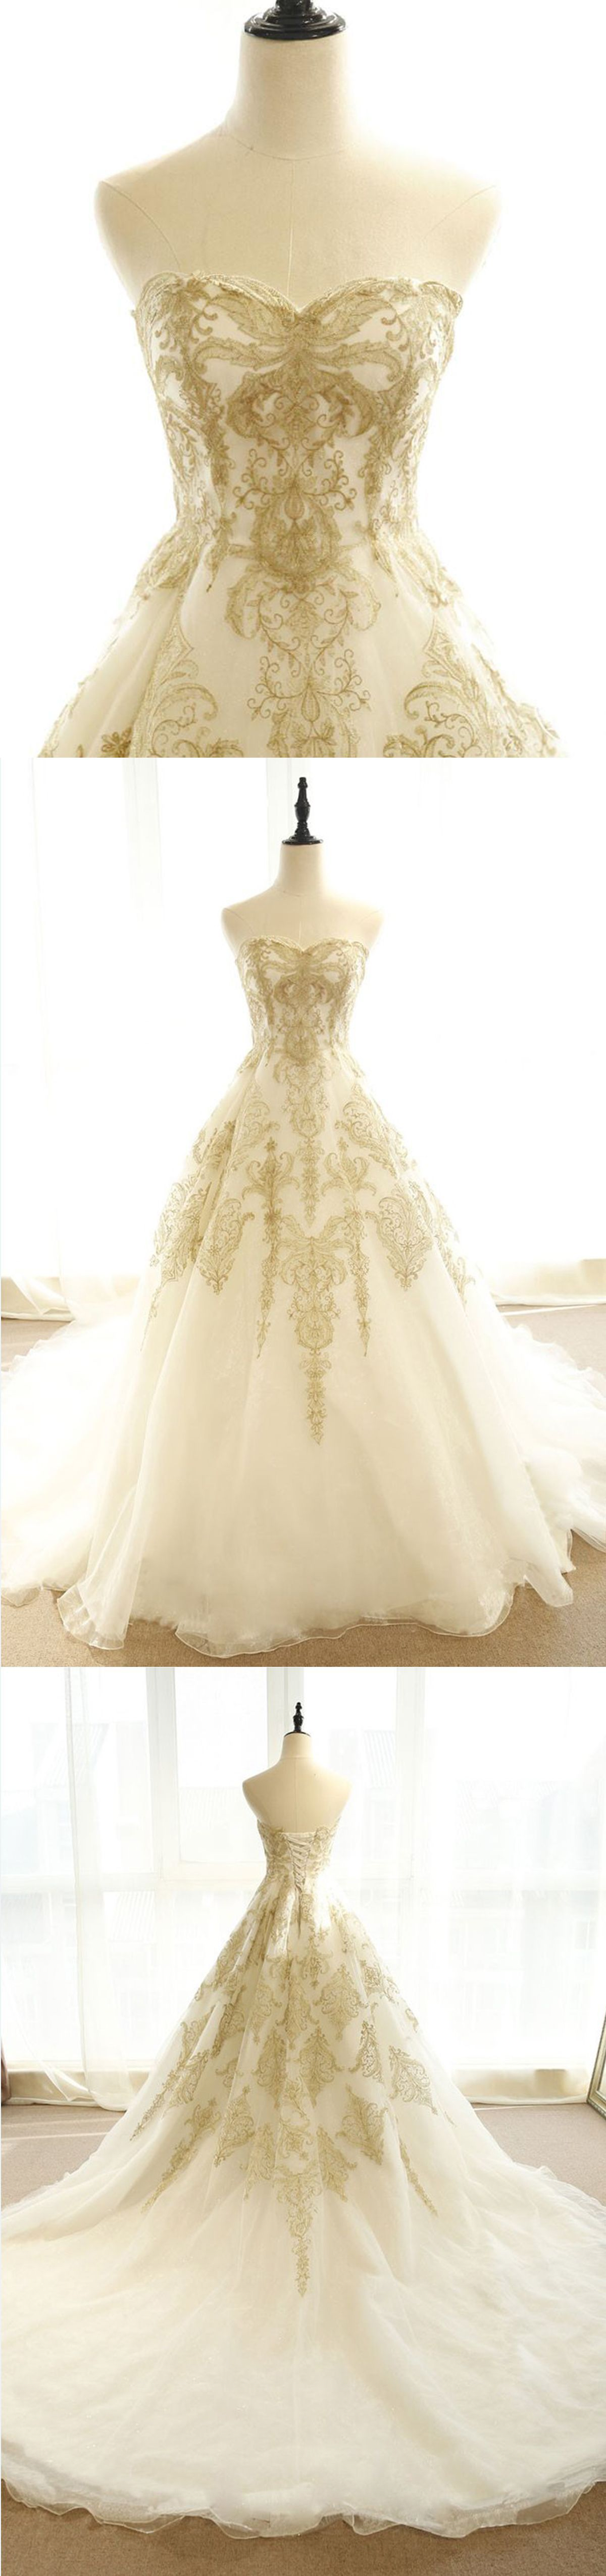 Ivory tulle sweetheart neck long train gold lace appliques evening